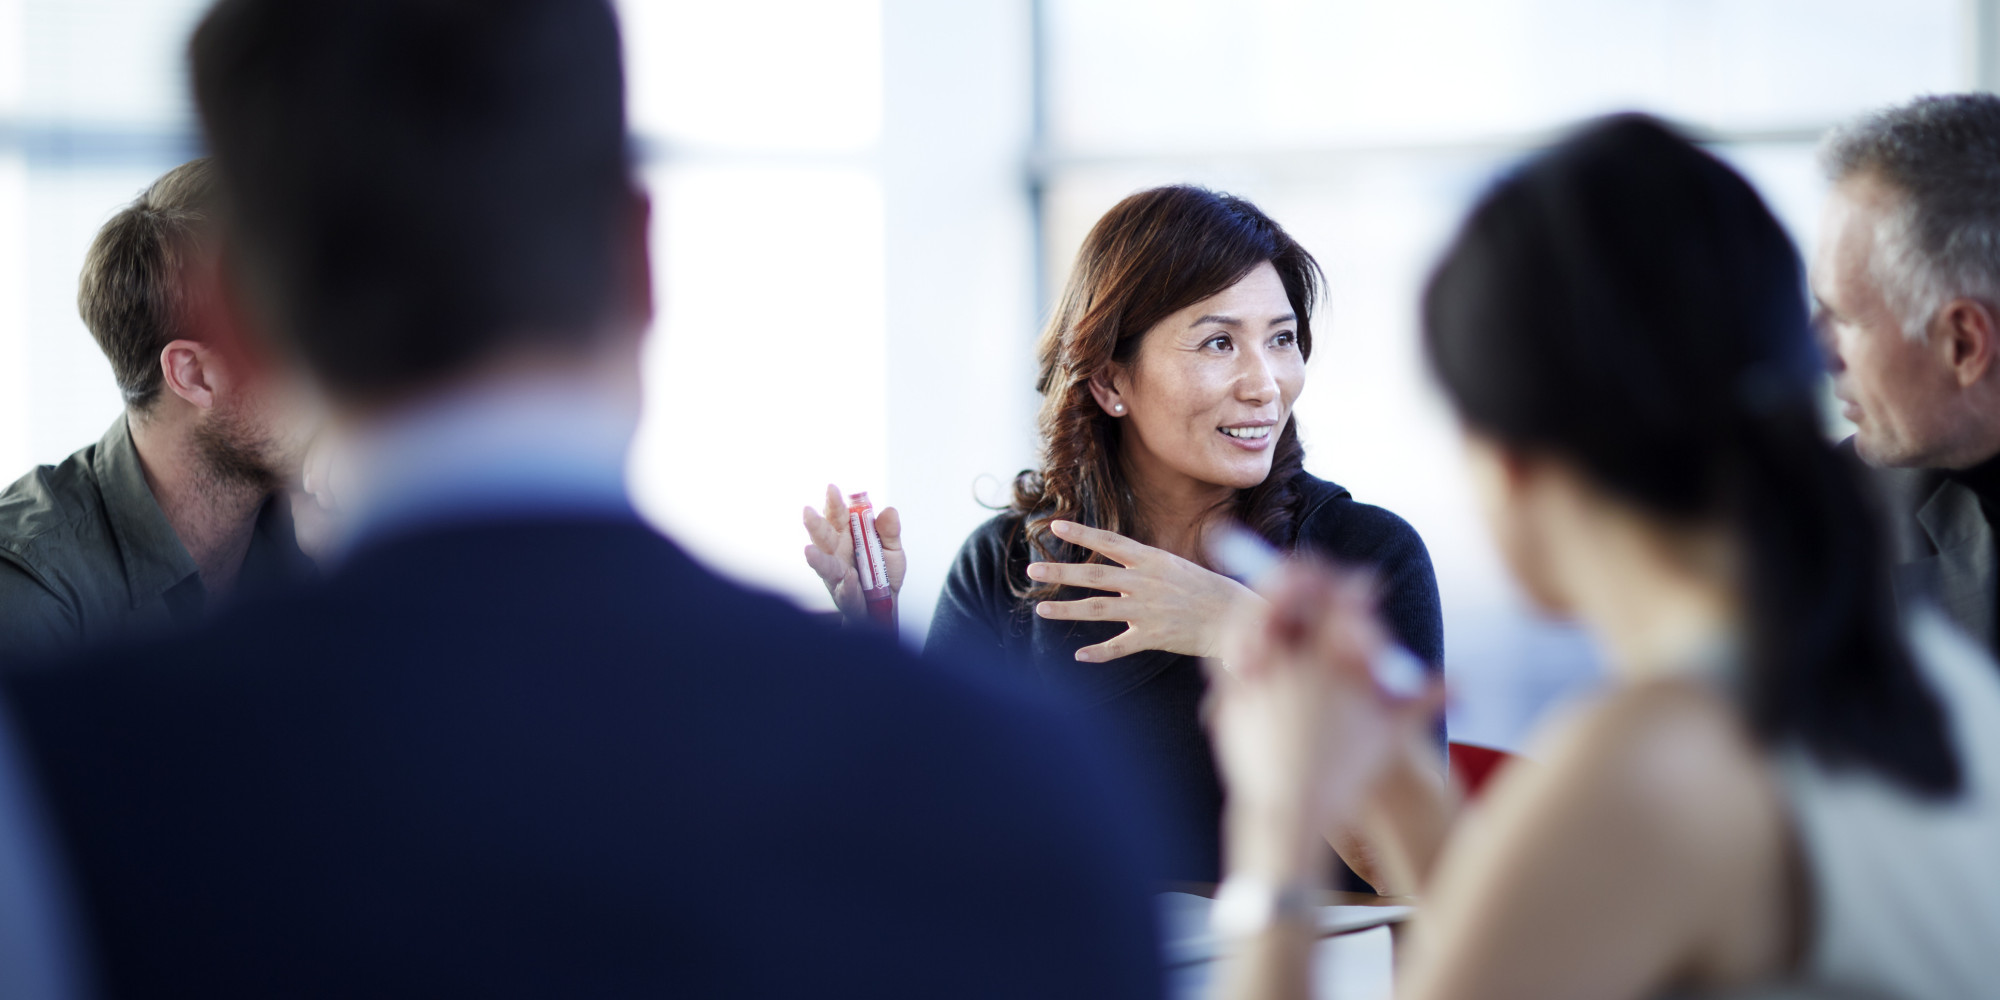 the challenges women executives face in the workplace Triumphing in the face of adversity and overcoming challenges can bring a real sense of achievement, as discussed in the previous chapter but challenges are not always so neatly linked with a positive sense of accomplishment.